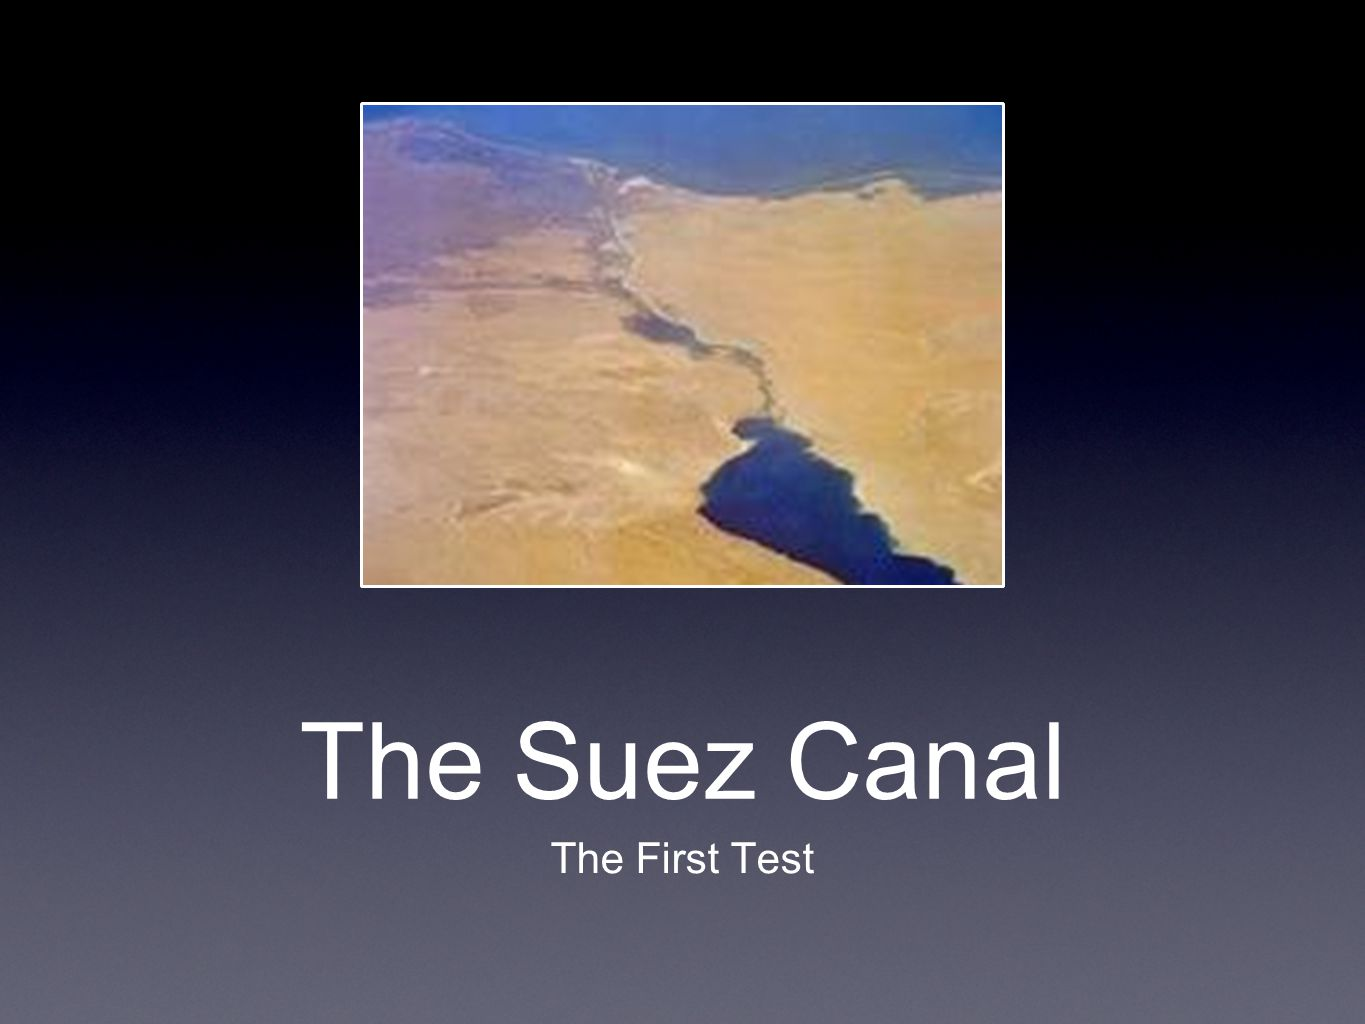 The Suez Canal The First Test